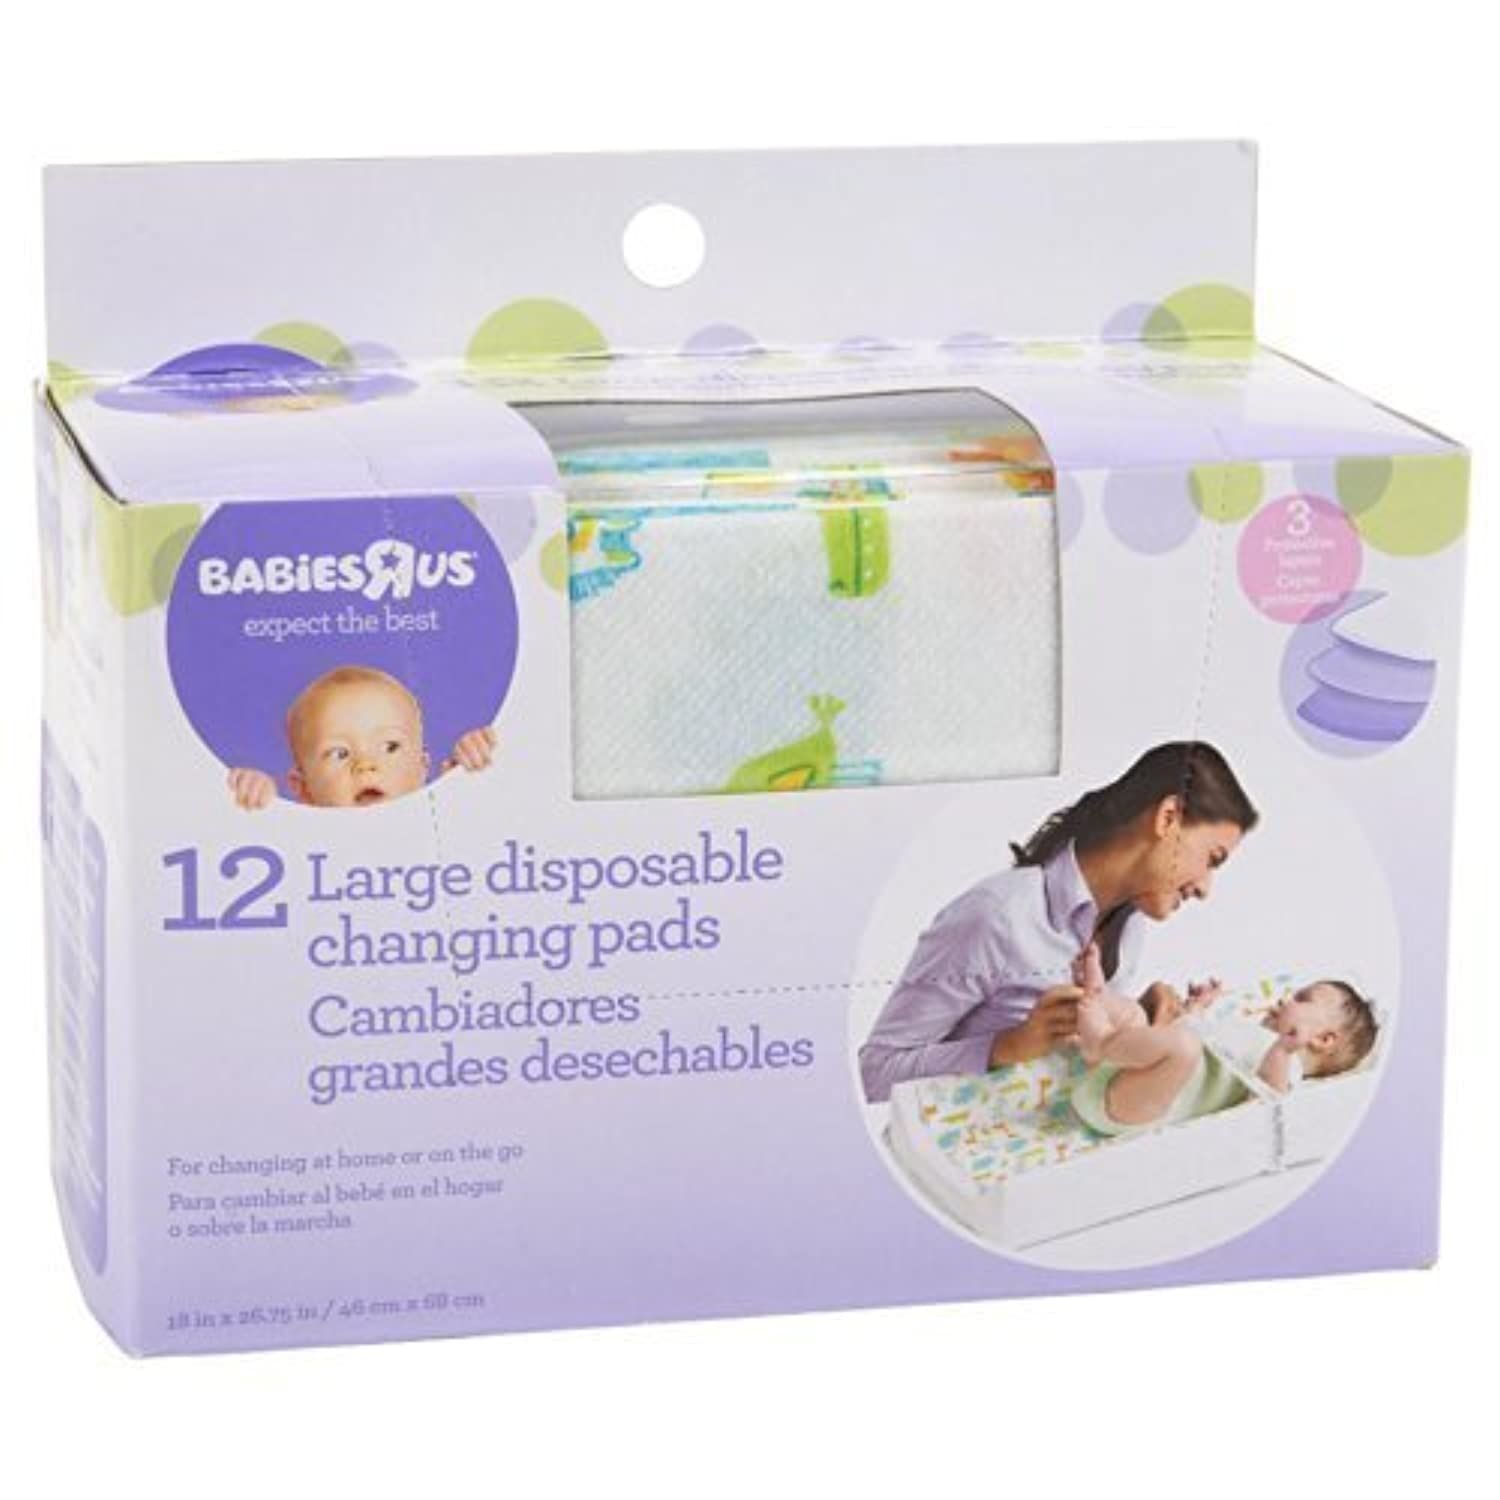 Babie R Us Large Disposable Changing Pads - 12 Pack by Babies R Us [並行輸入品]